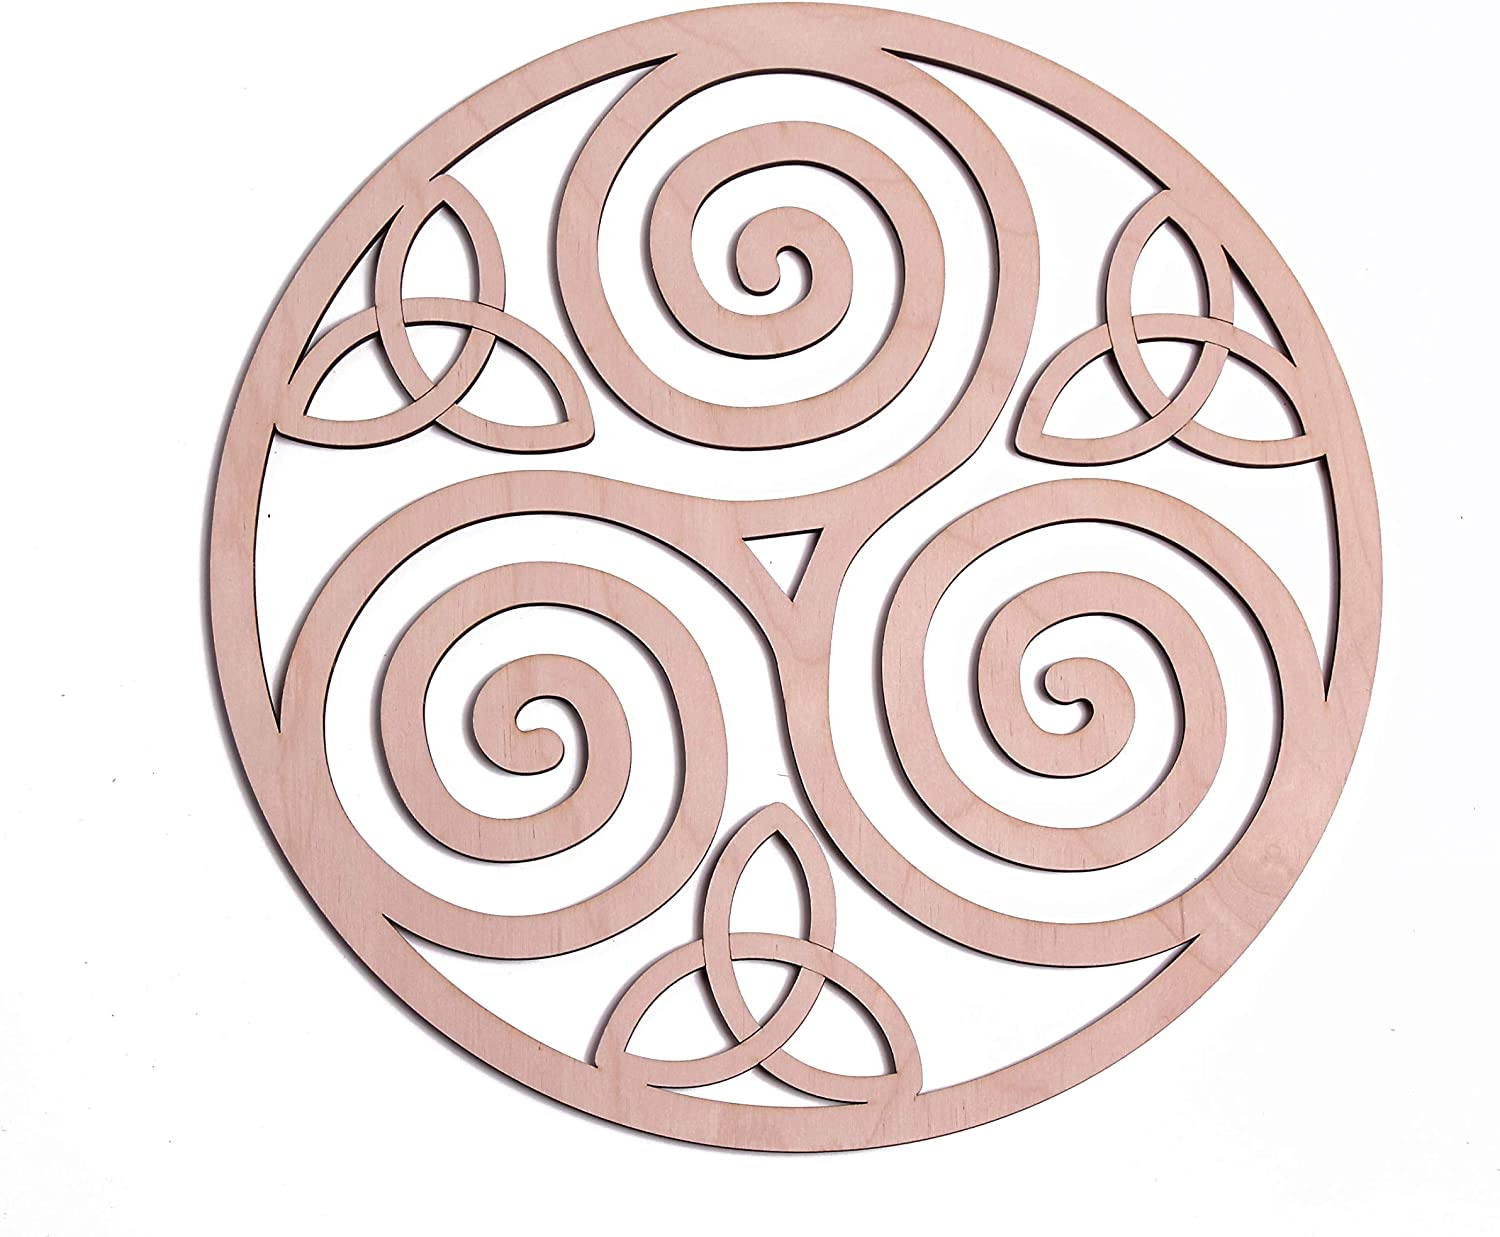 "Triskelion Celtic Knot, Triskele Knot Wooden Wall Art 12"", Celtic Art, I Irish Symbols,Celtic Triple Spiral, Celtic Decor, Irish Wall Art, Triple Helix Spiral, Fourth Level Mfg. Designs"